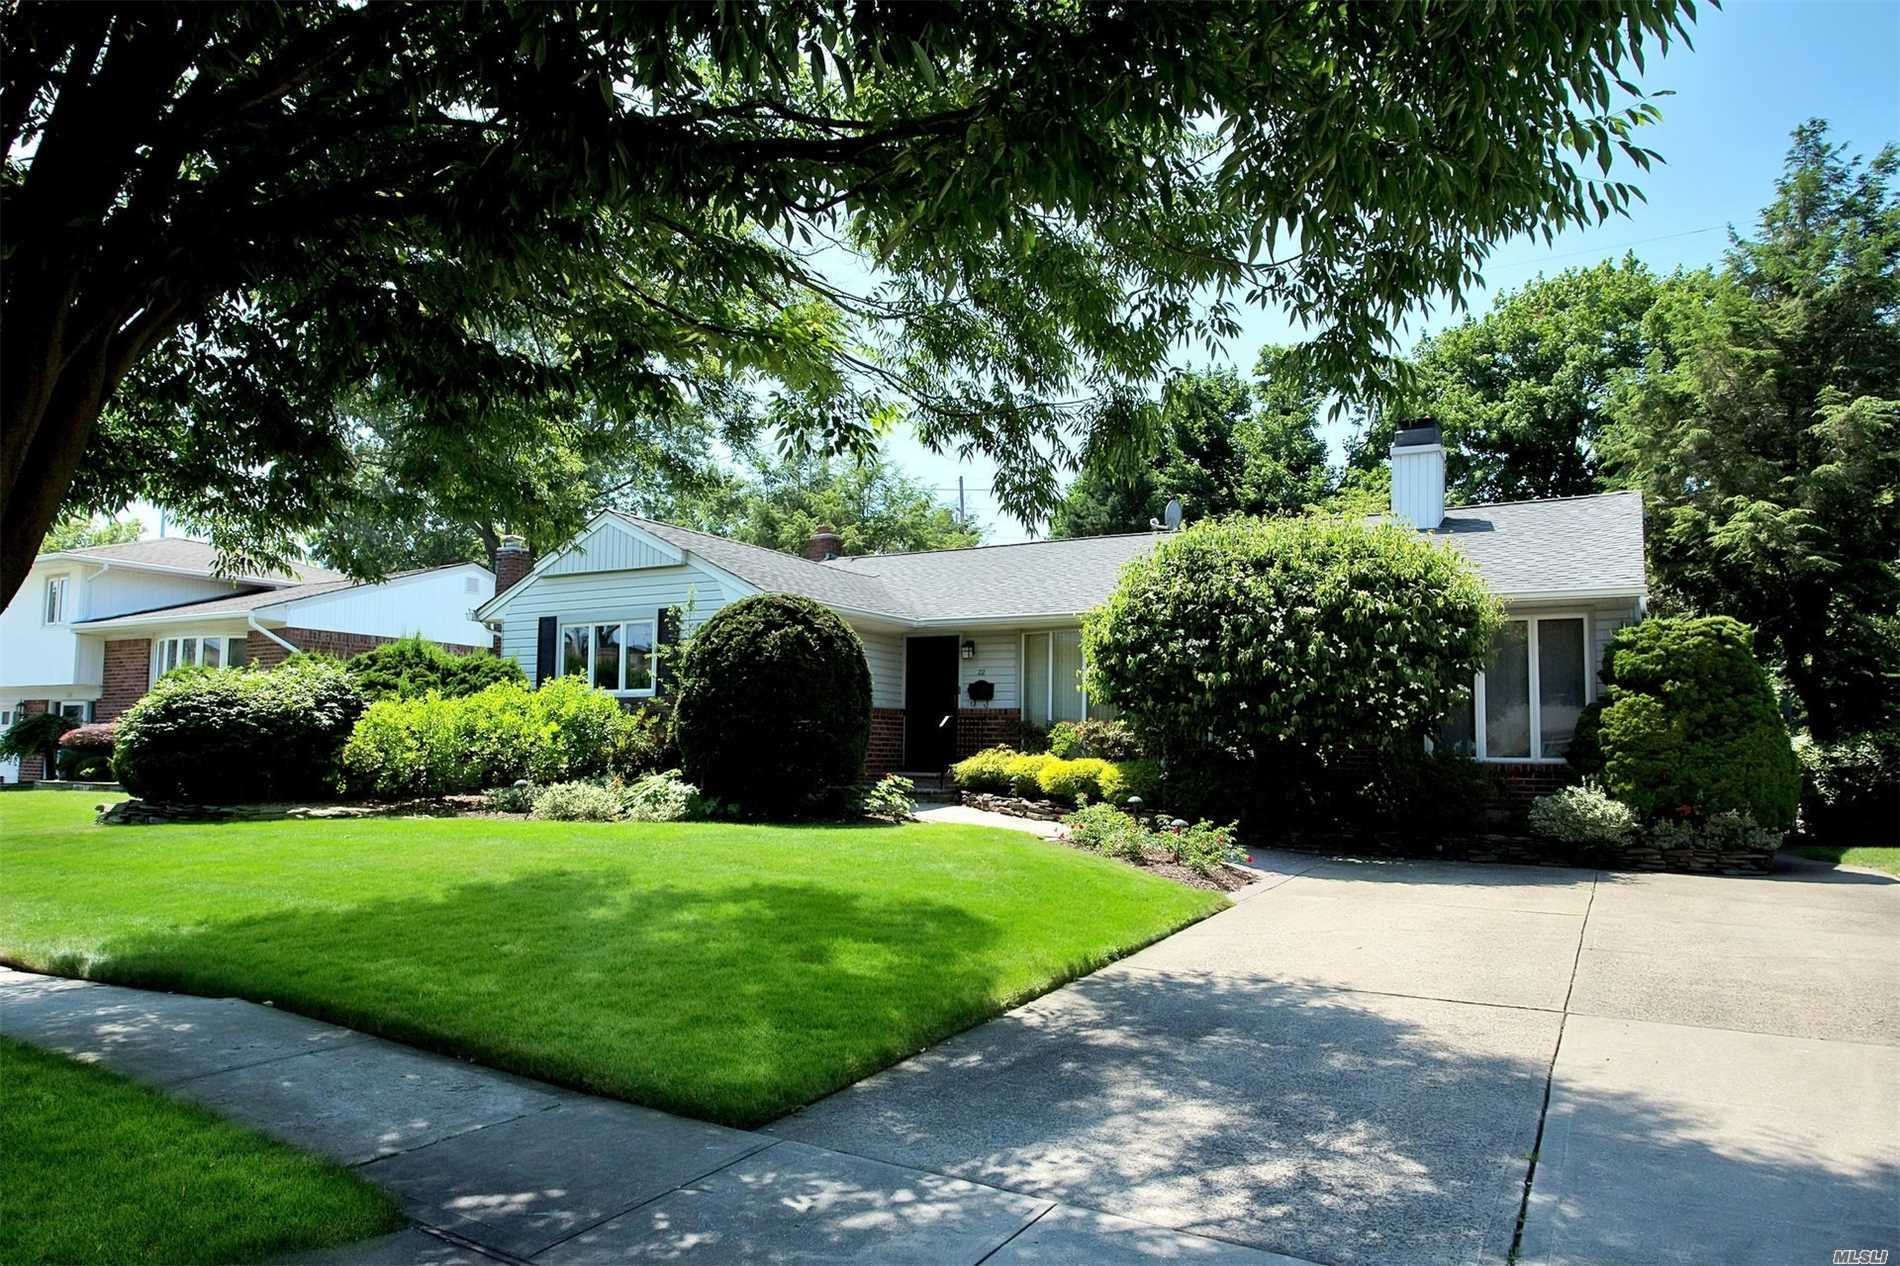 22 Edna Dr - Syosset, New York